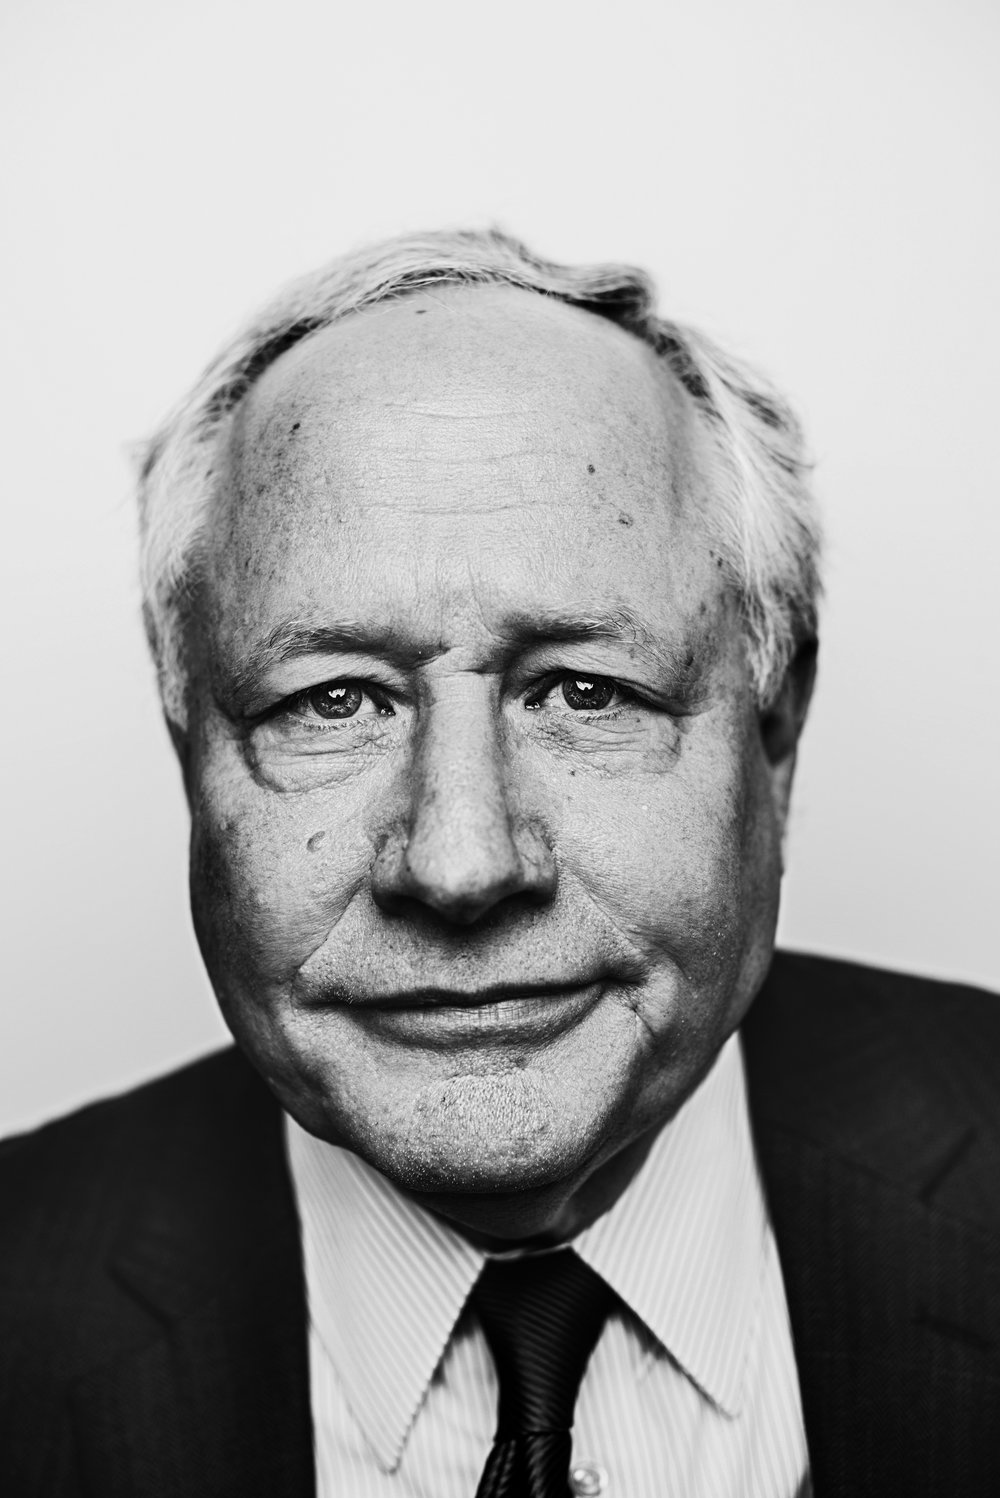 Political commentator Bill Kristol